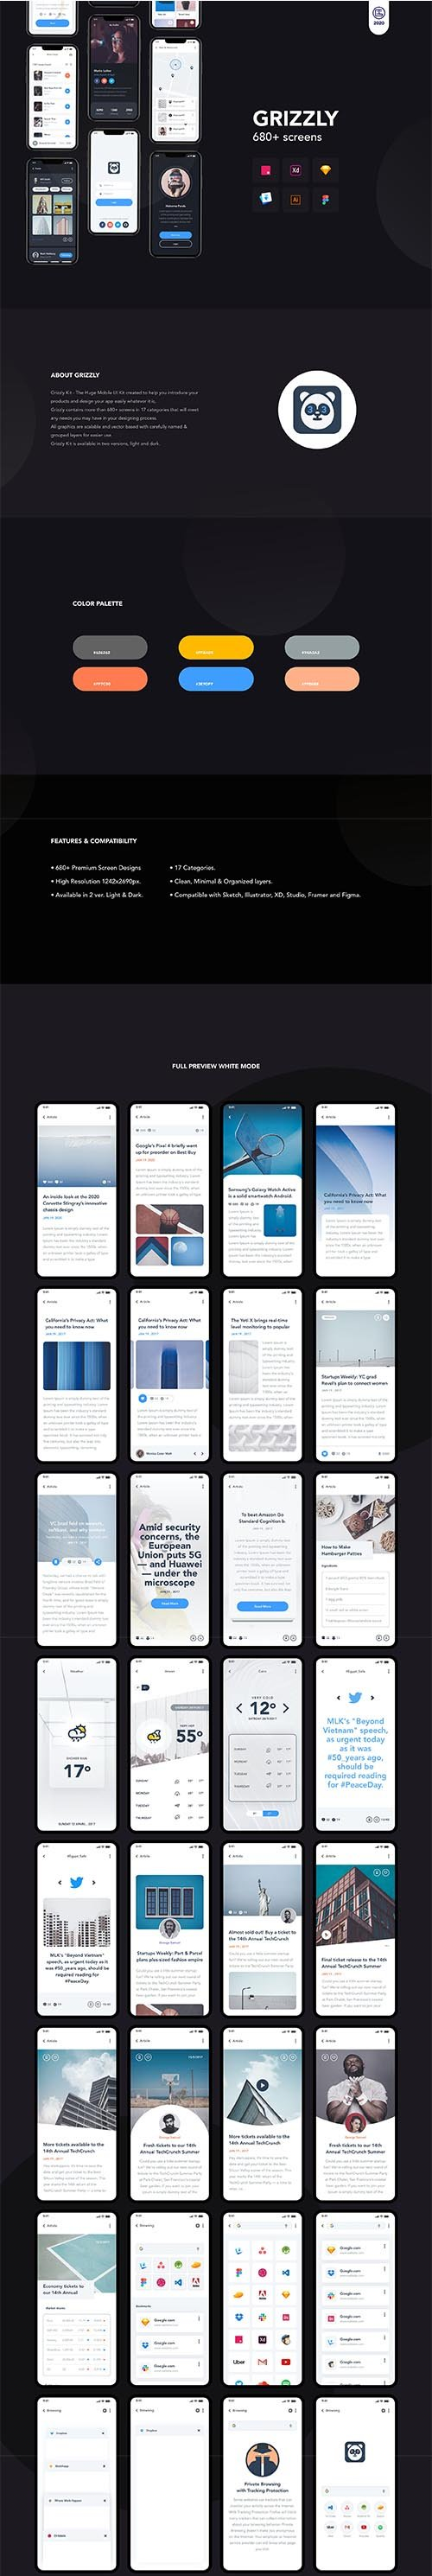 Grizzly | Mobile App Ui KIt - UI8